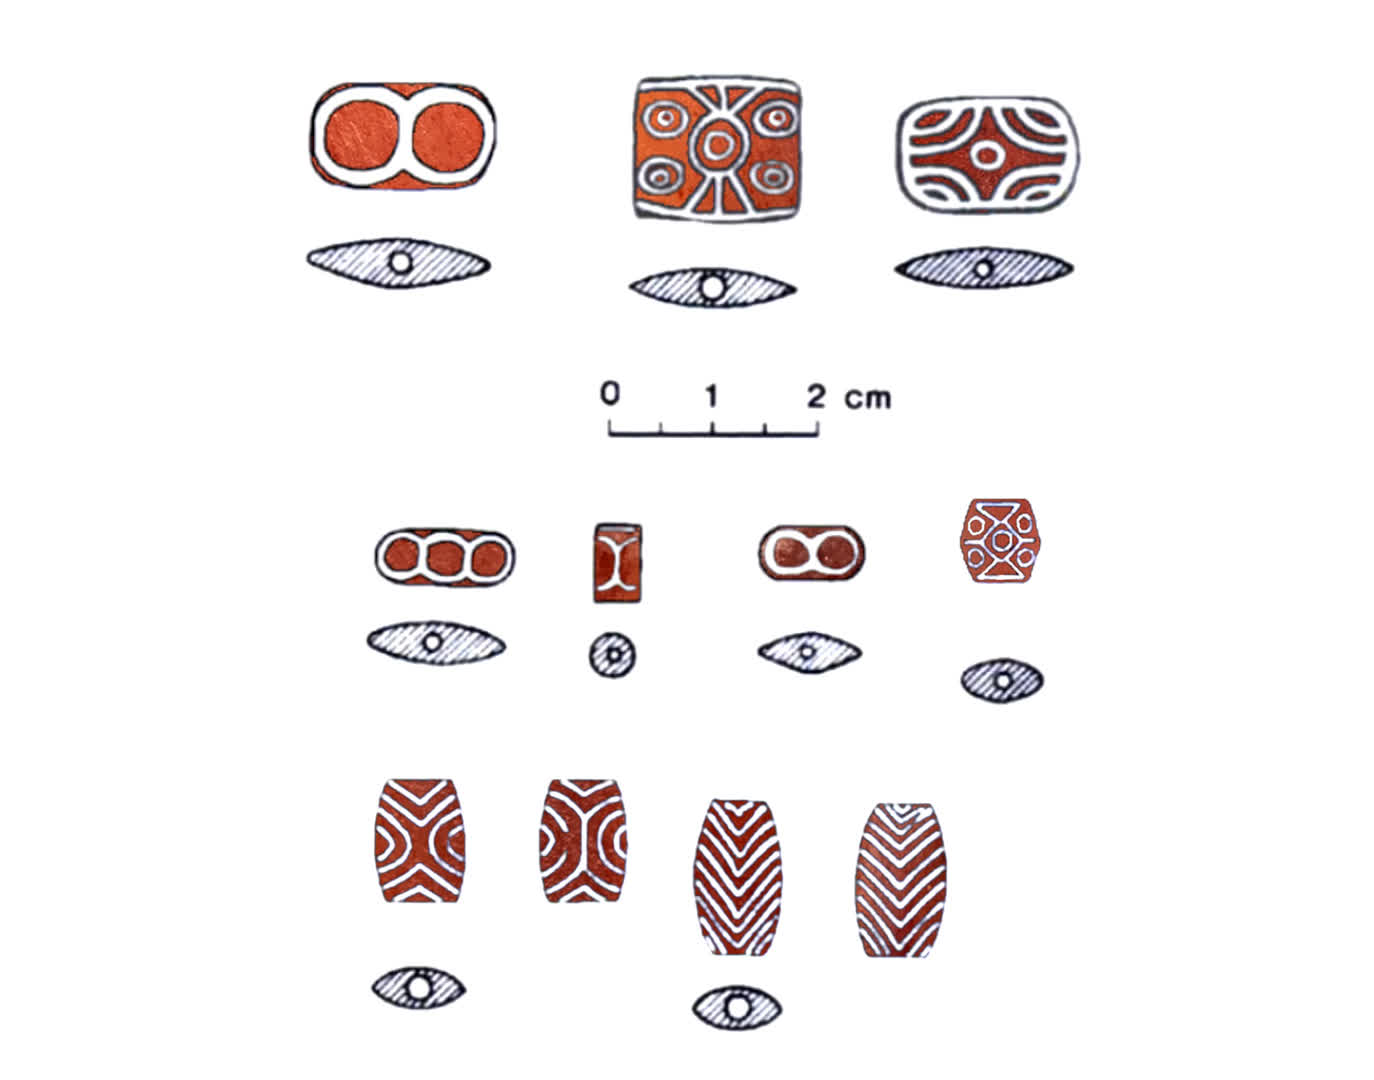 Illustration of etched carnelian beads after Mackay